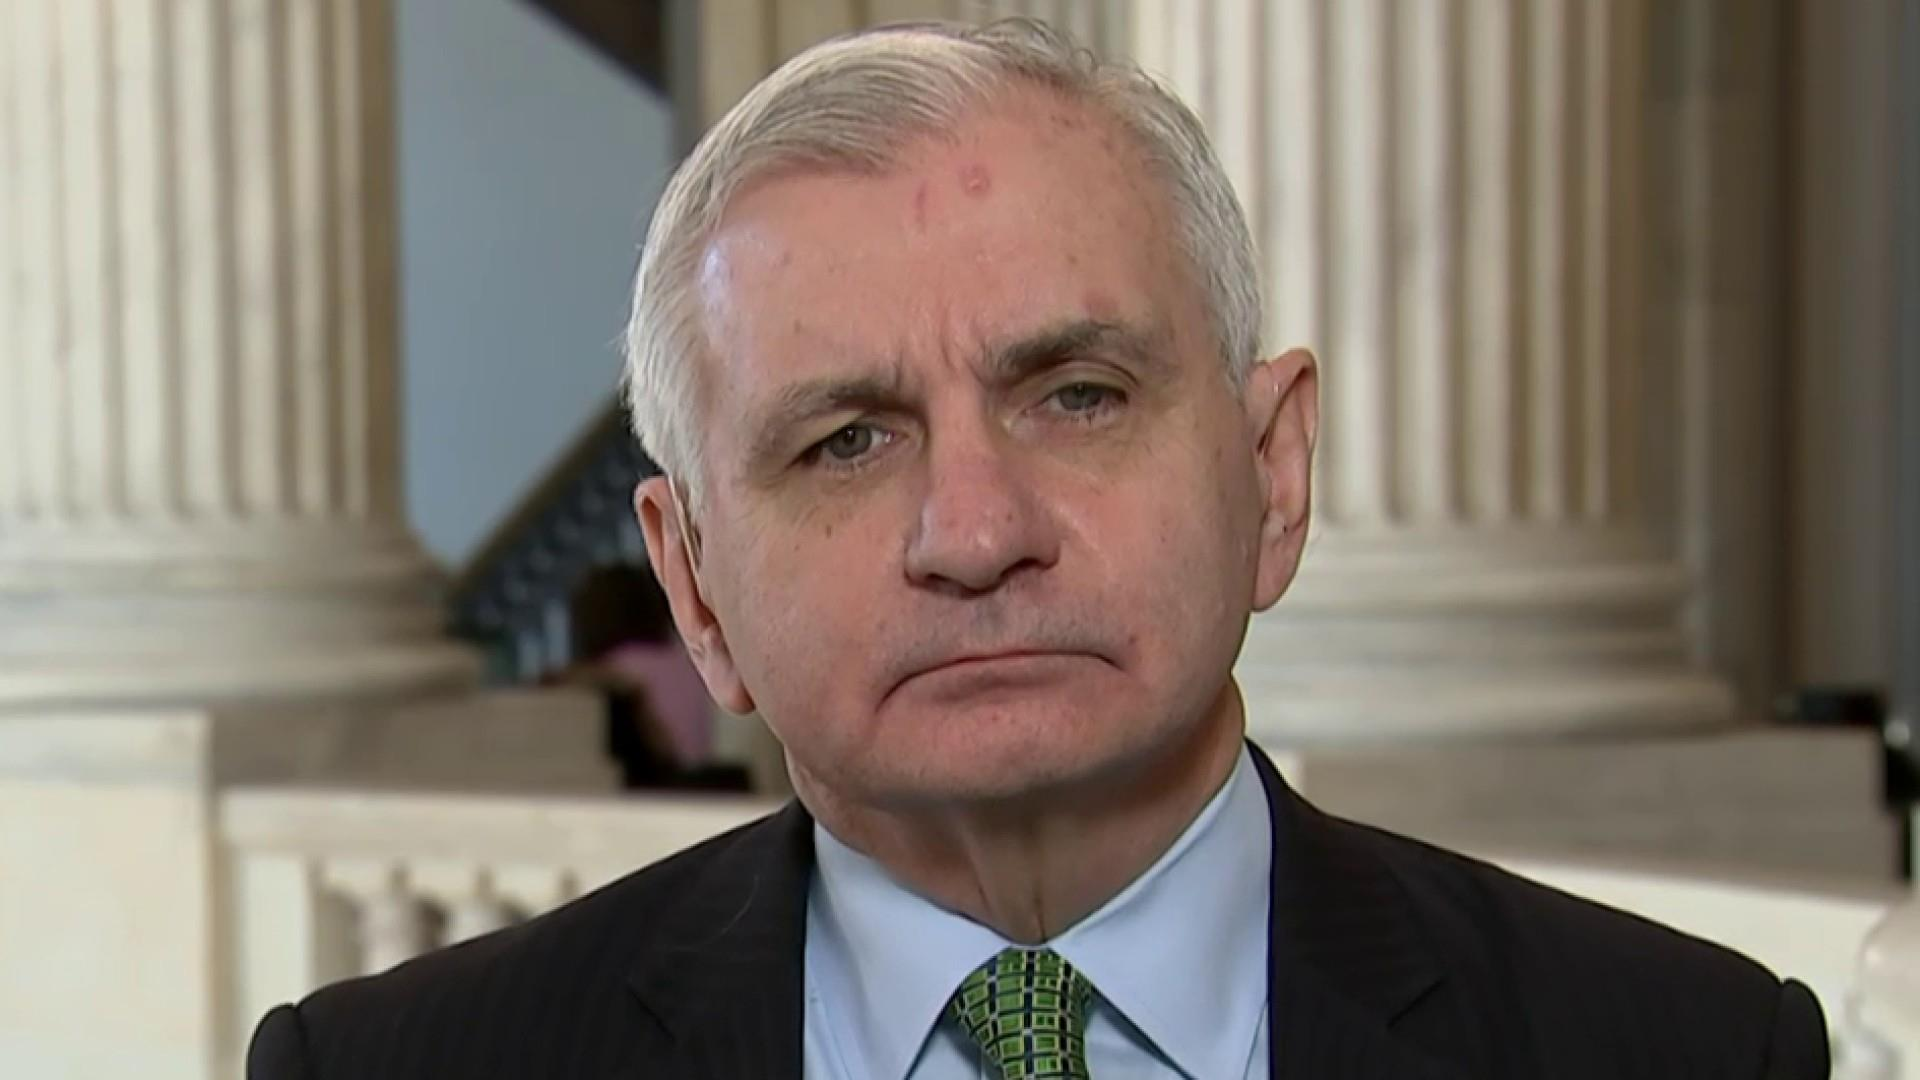 Sen. Reed questions what left there is for Trump to sanction in Iran